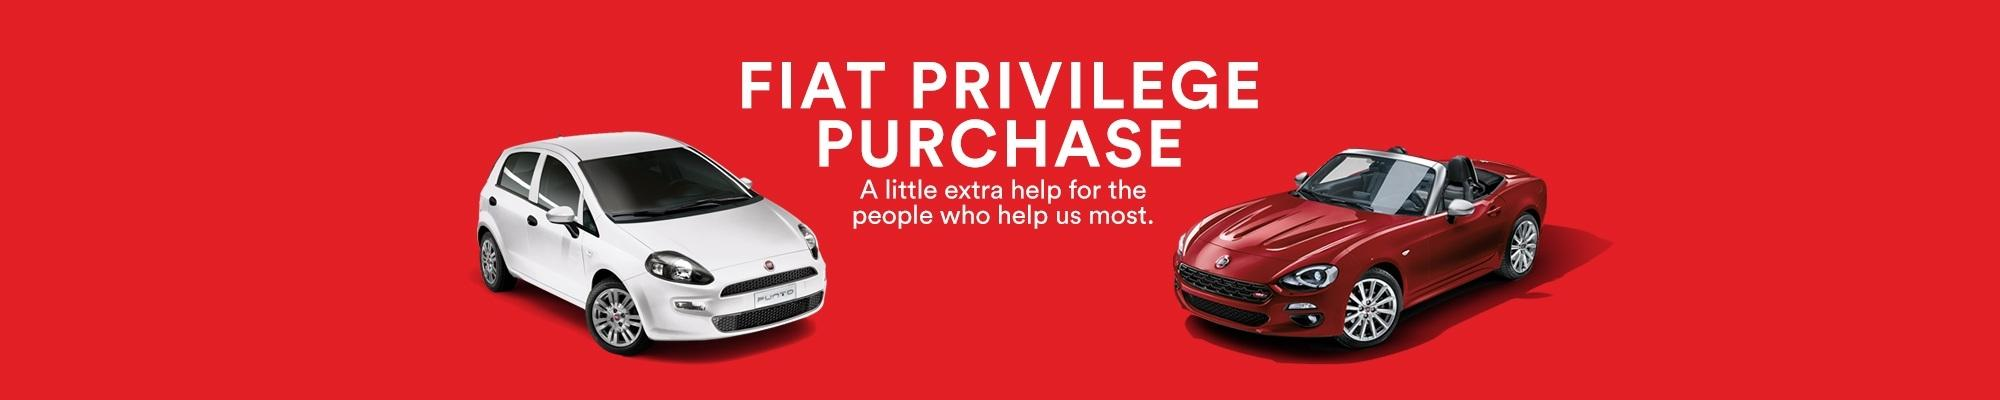 Fiat Privilege Purchase Scheme